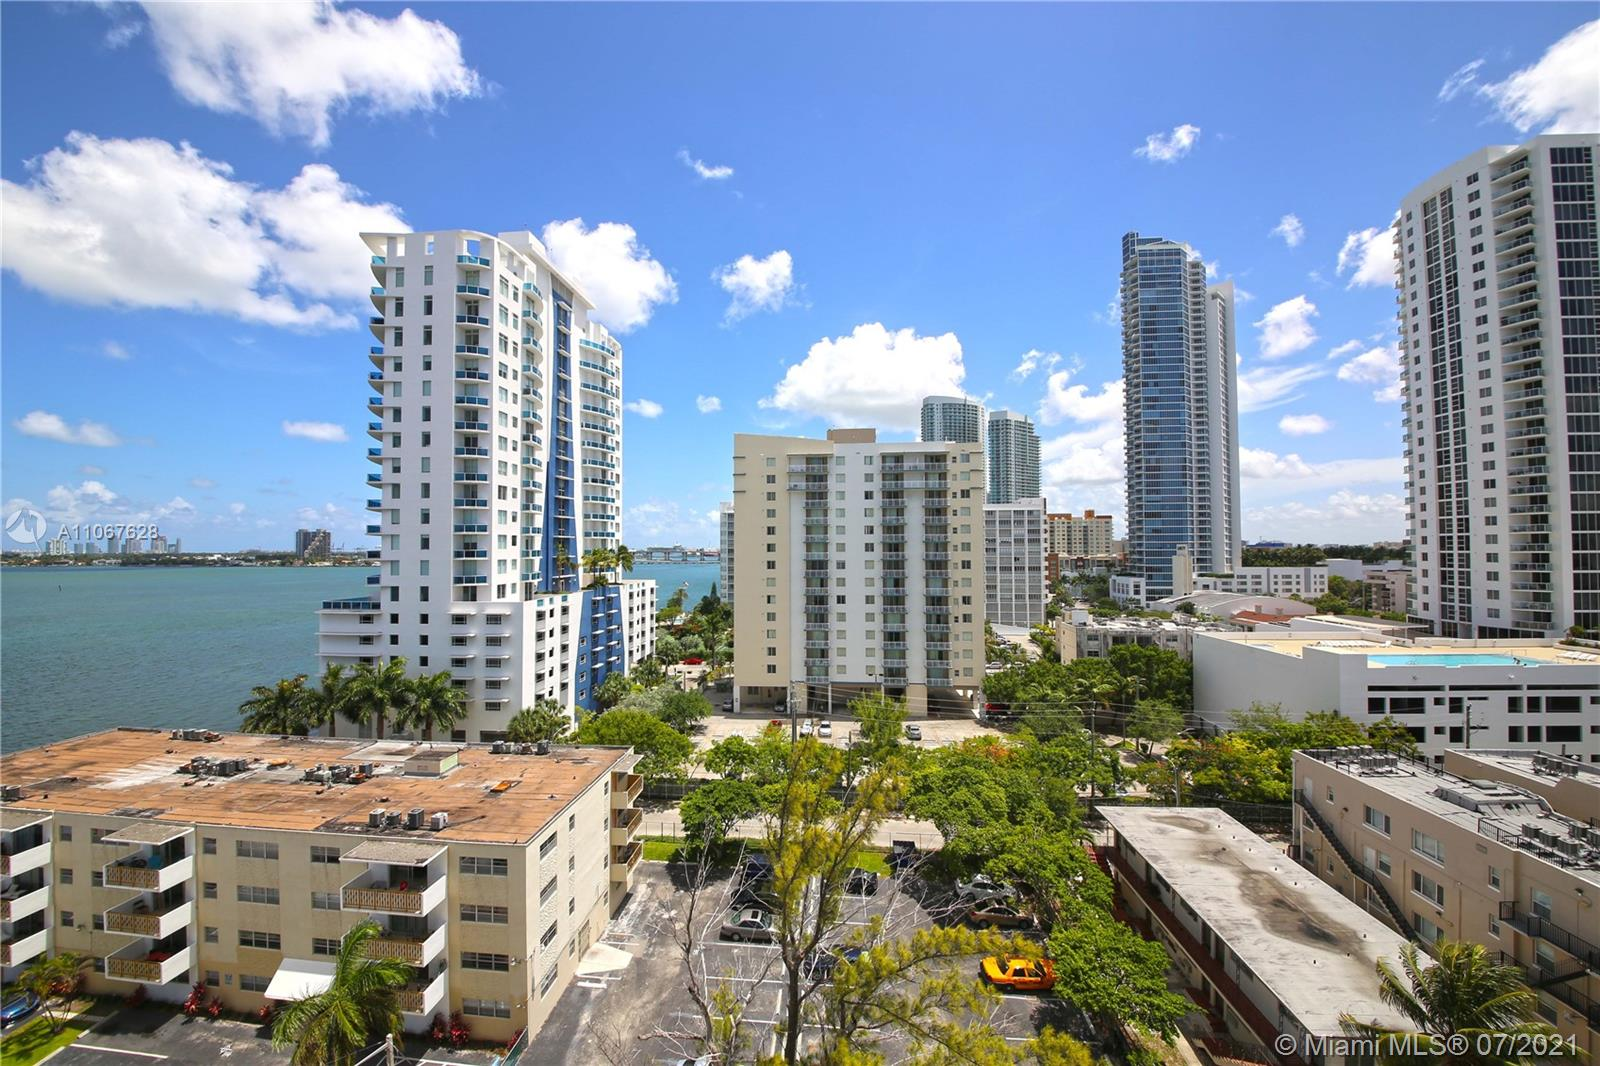 Amazing gorgeous views of the bay, Miami Beach, and Downtown skyline. Spacious 3 Beds and 2 baths corner unit ready for occupancy.The 23 Biscayne Bay features SS appliances, cherry wood finished kitchen cabinets, & porcelain floors in bathrooms.With wood floors, Berber carpet, paint throughout, ceiling light fixtures, & verticals in windows).